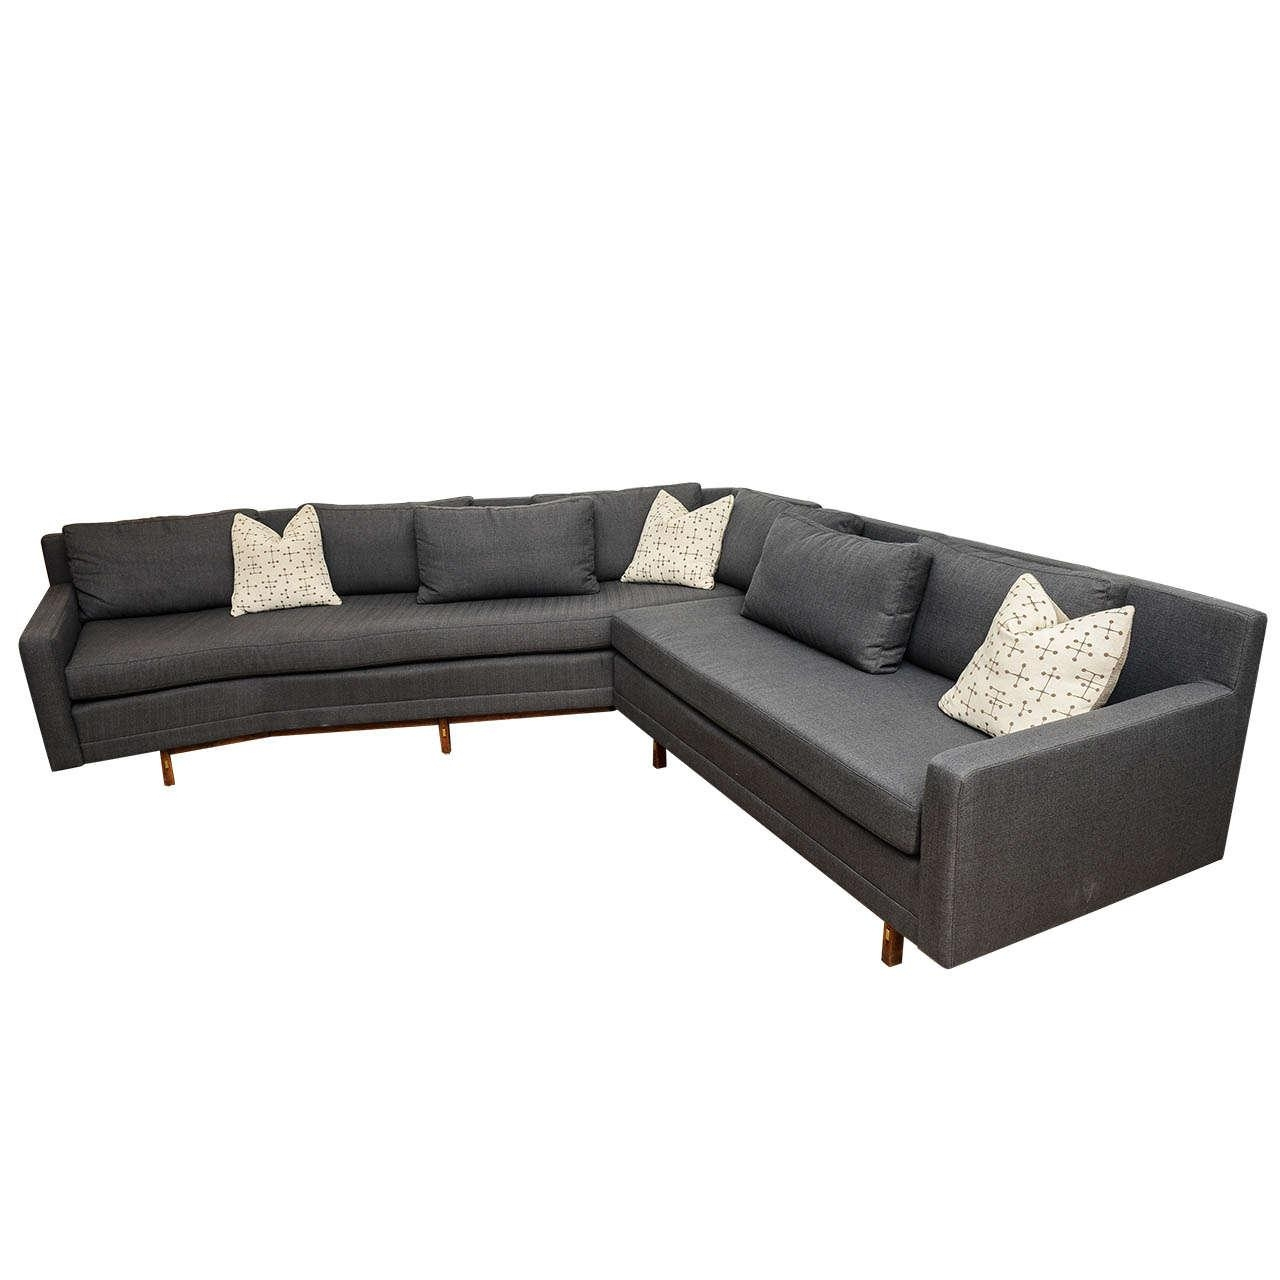 Mid Century Modern Sectional Sofas – Video And Photos Throughout Mid Century Modern Sectional (View 13 of 20)